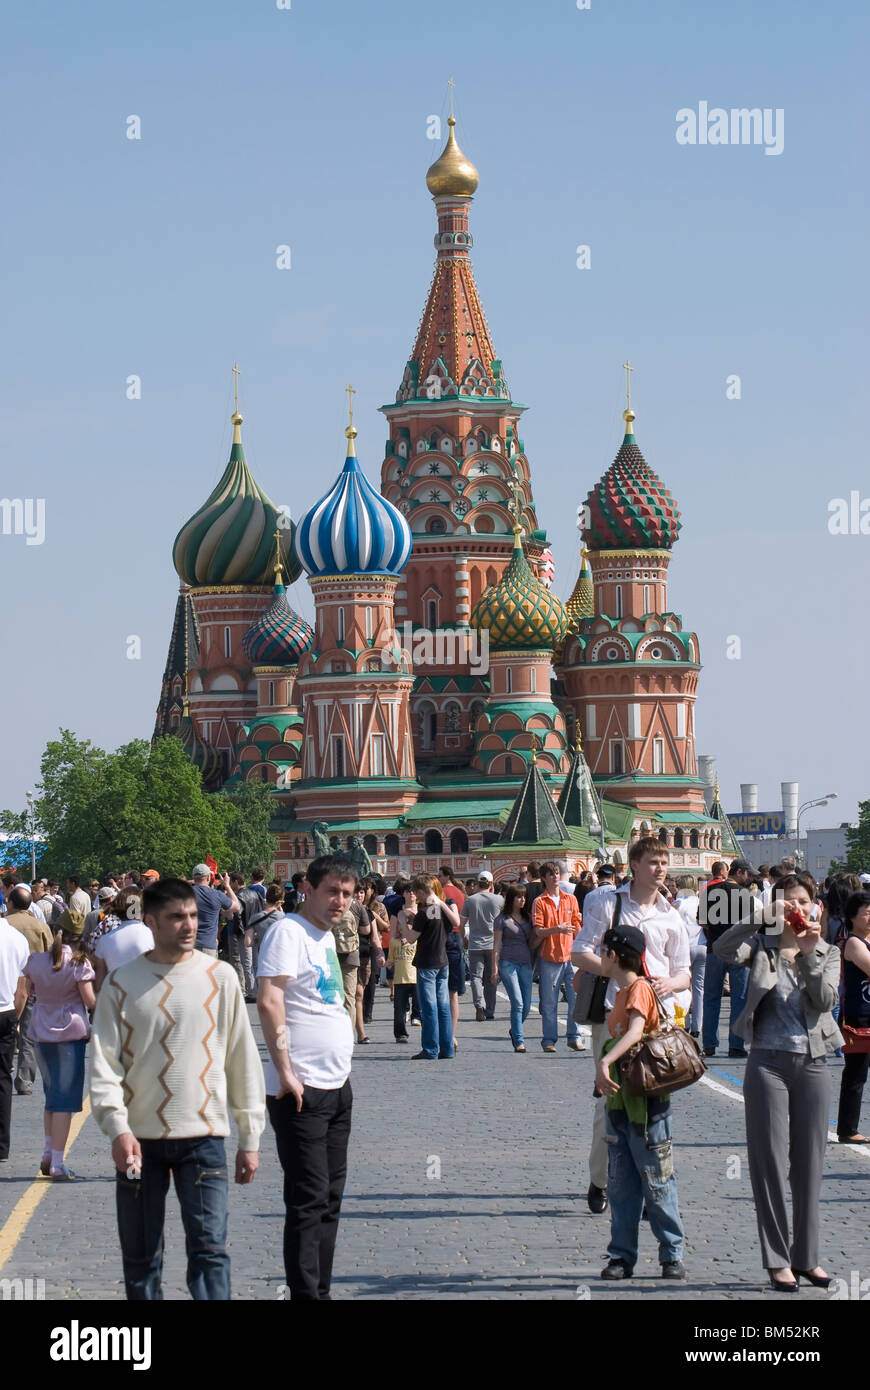 How many people in Moscow 62